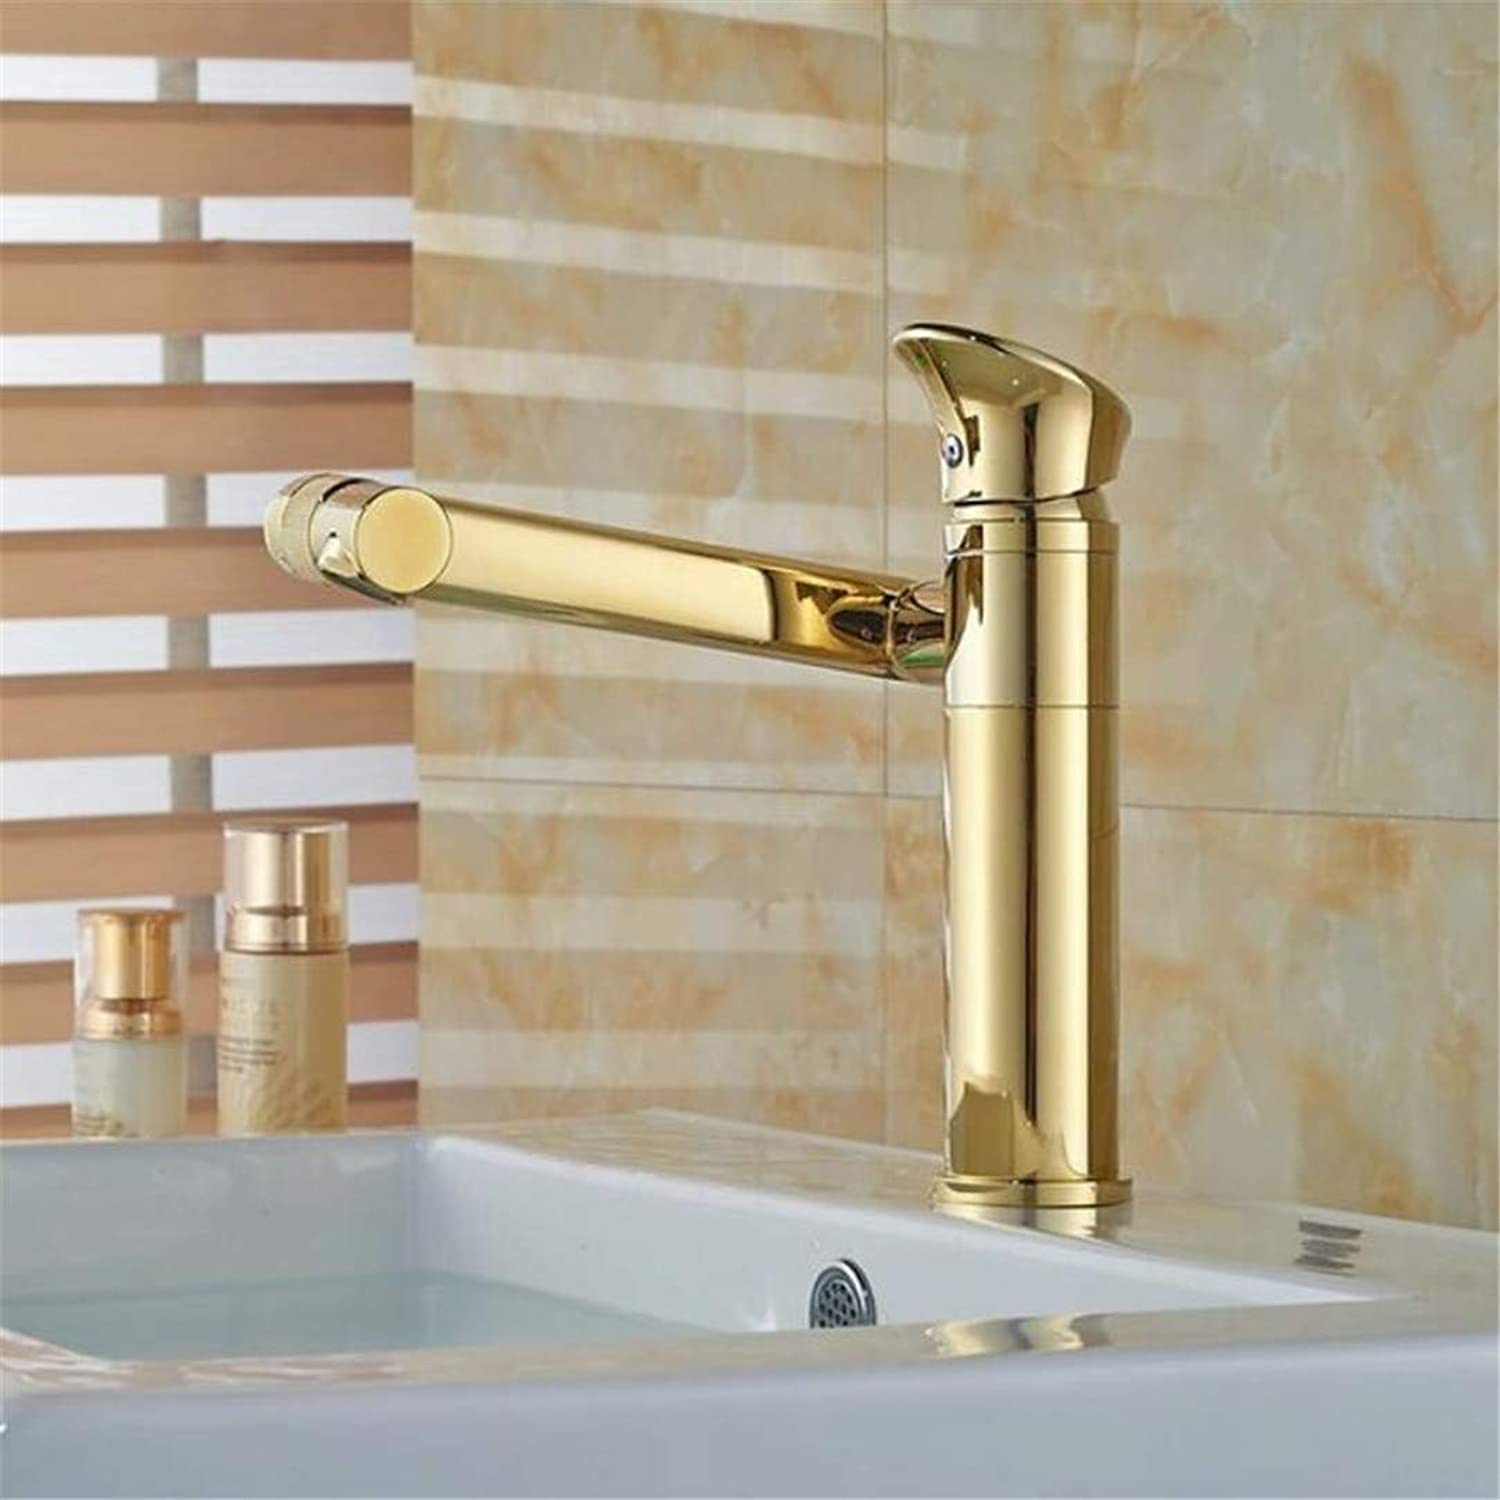 Faucet Washbasin Mixer Wholesale and Retail golden Finish Basin Faucet 180 Degree Bathroom Sink Tap Hot&Cold Tap One Hole